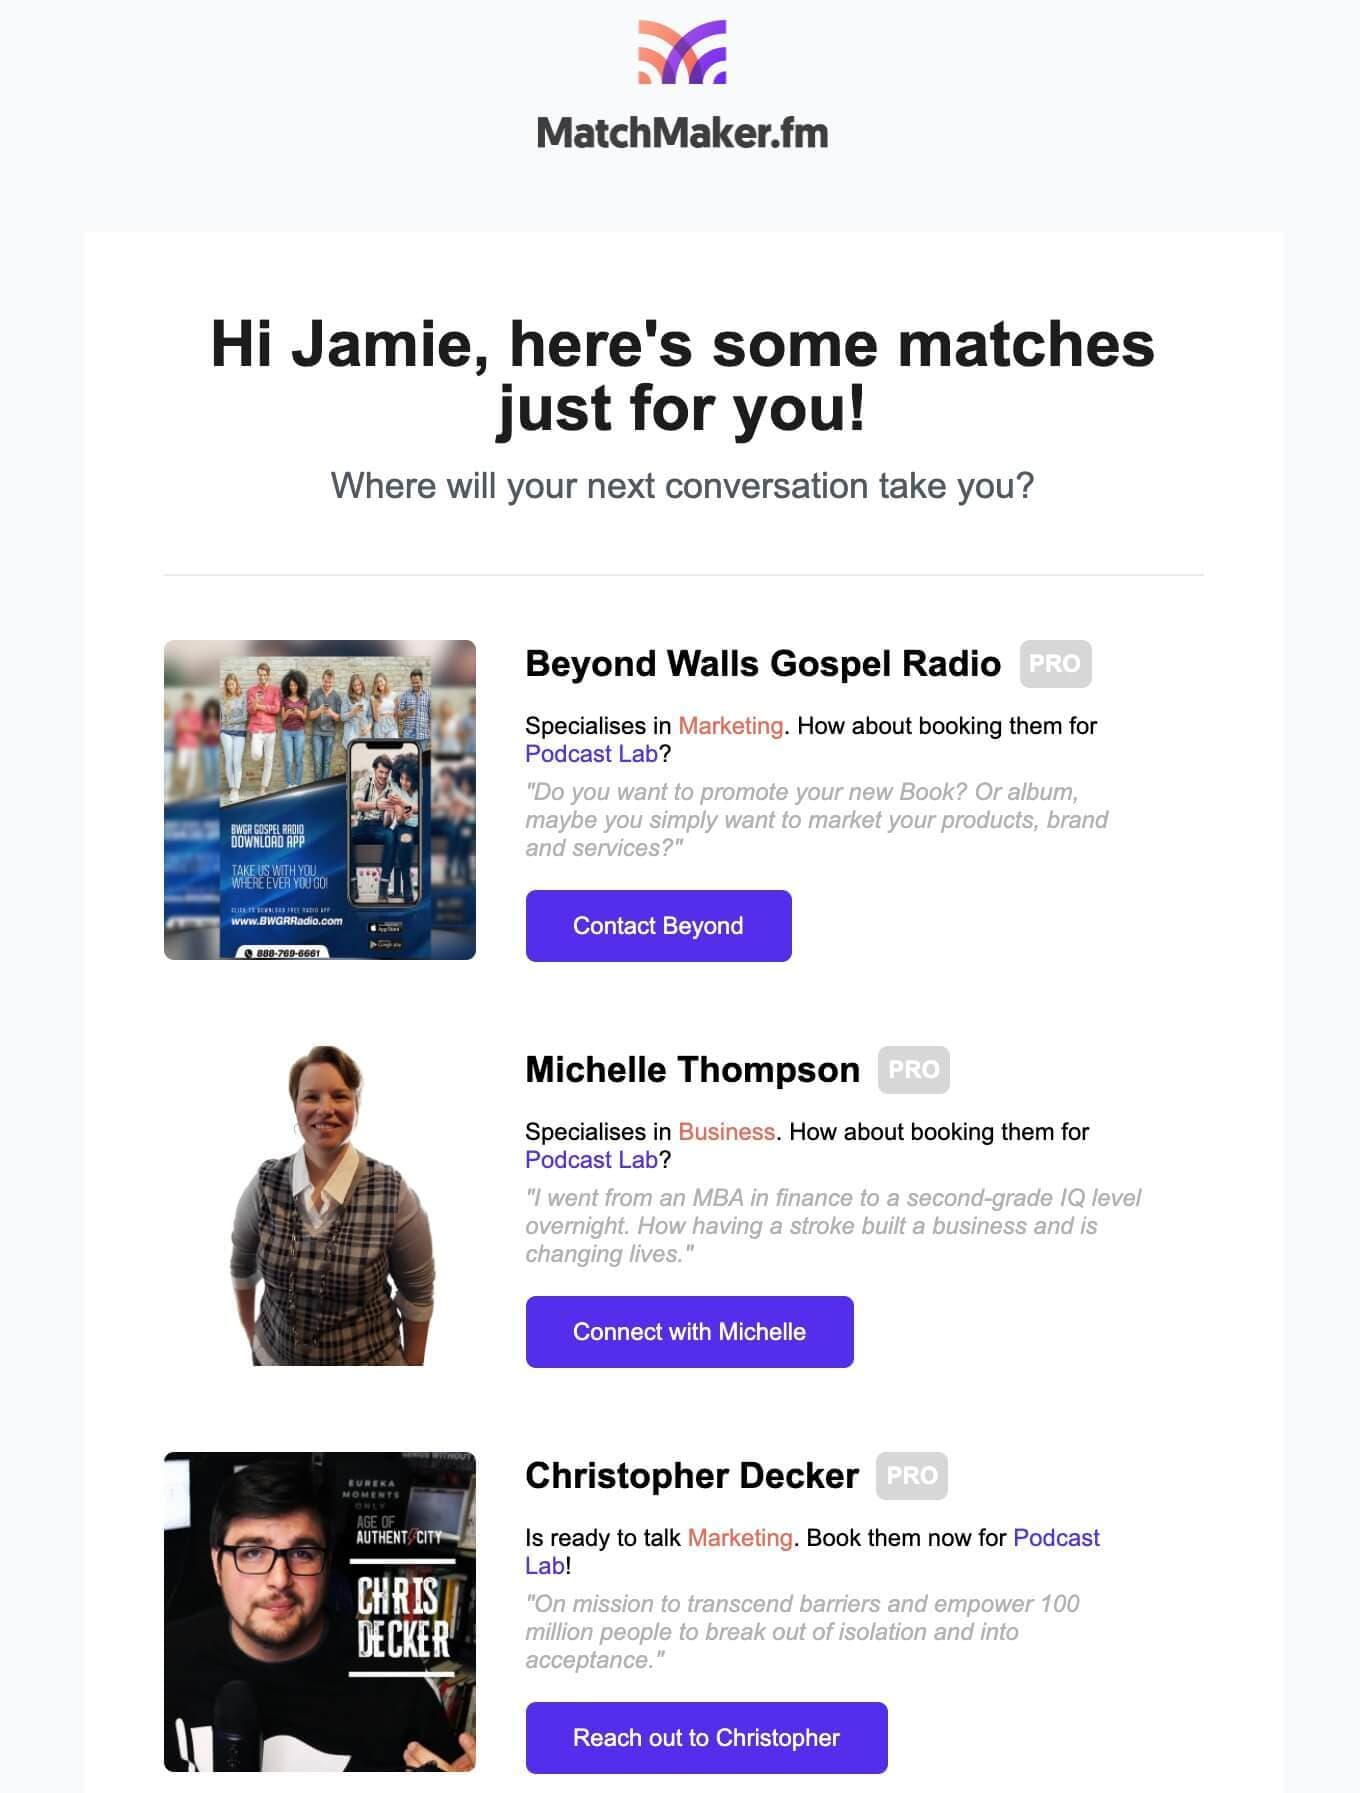 MatchMaker guest recommendations